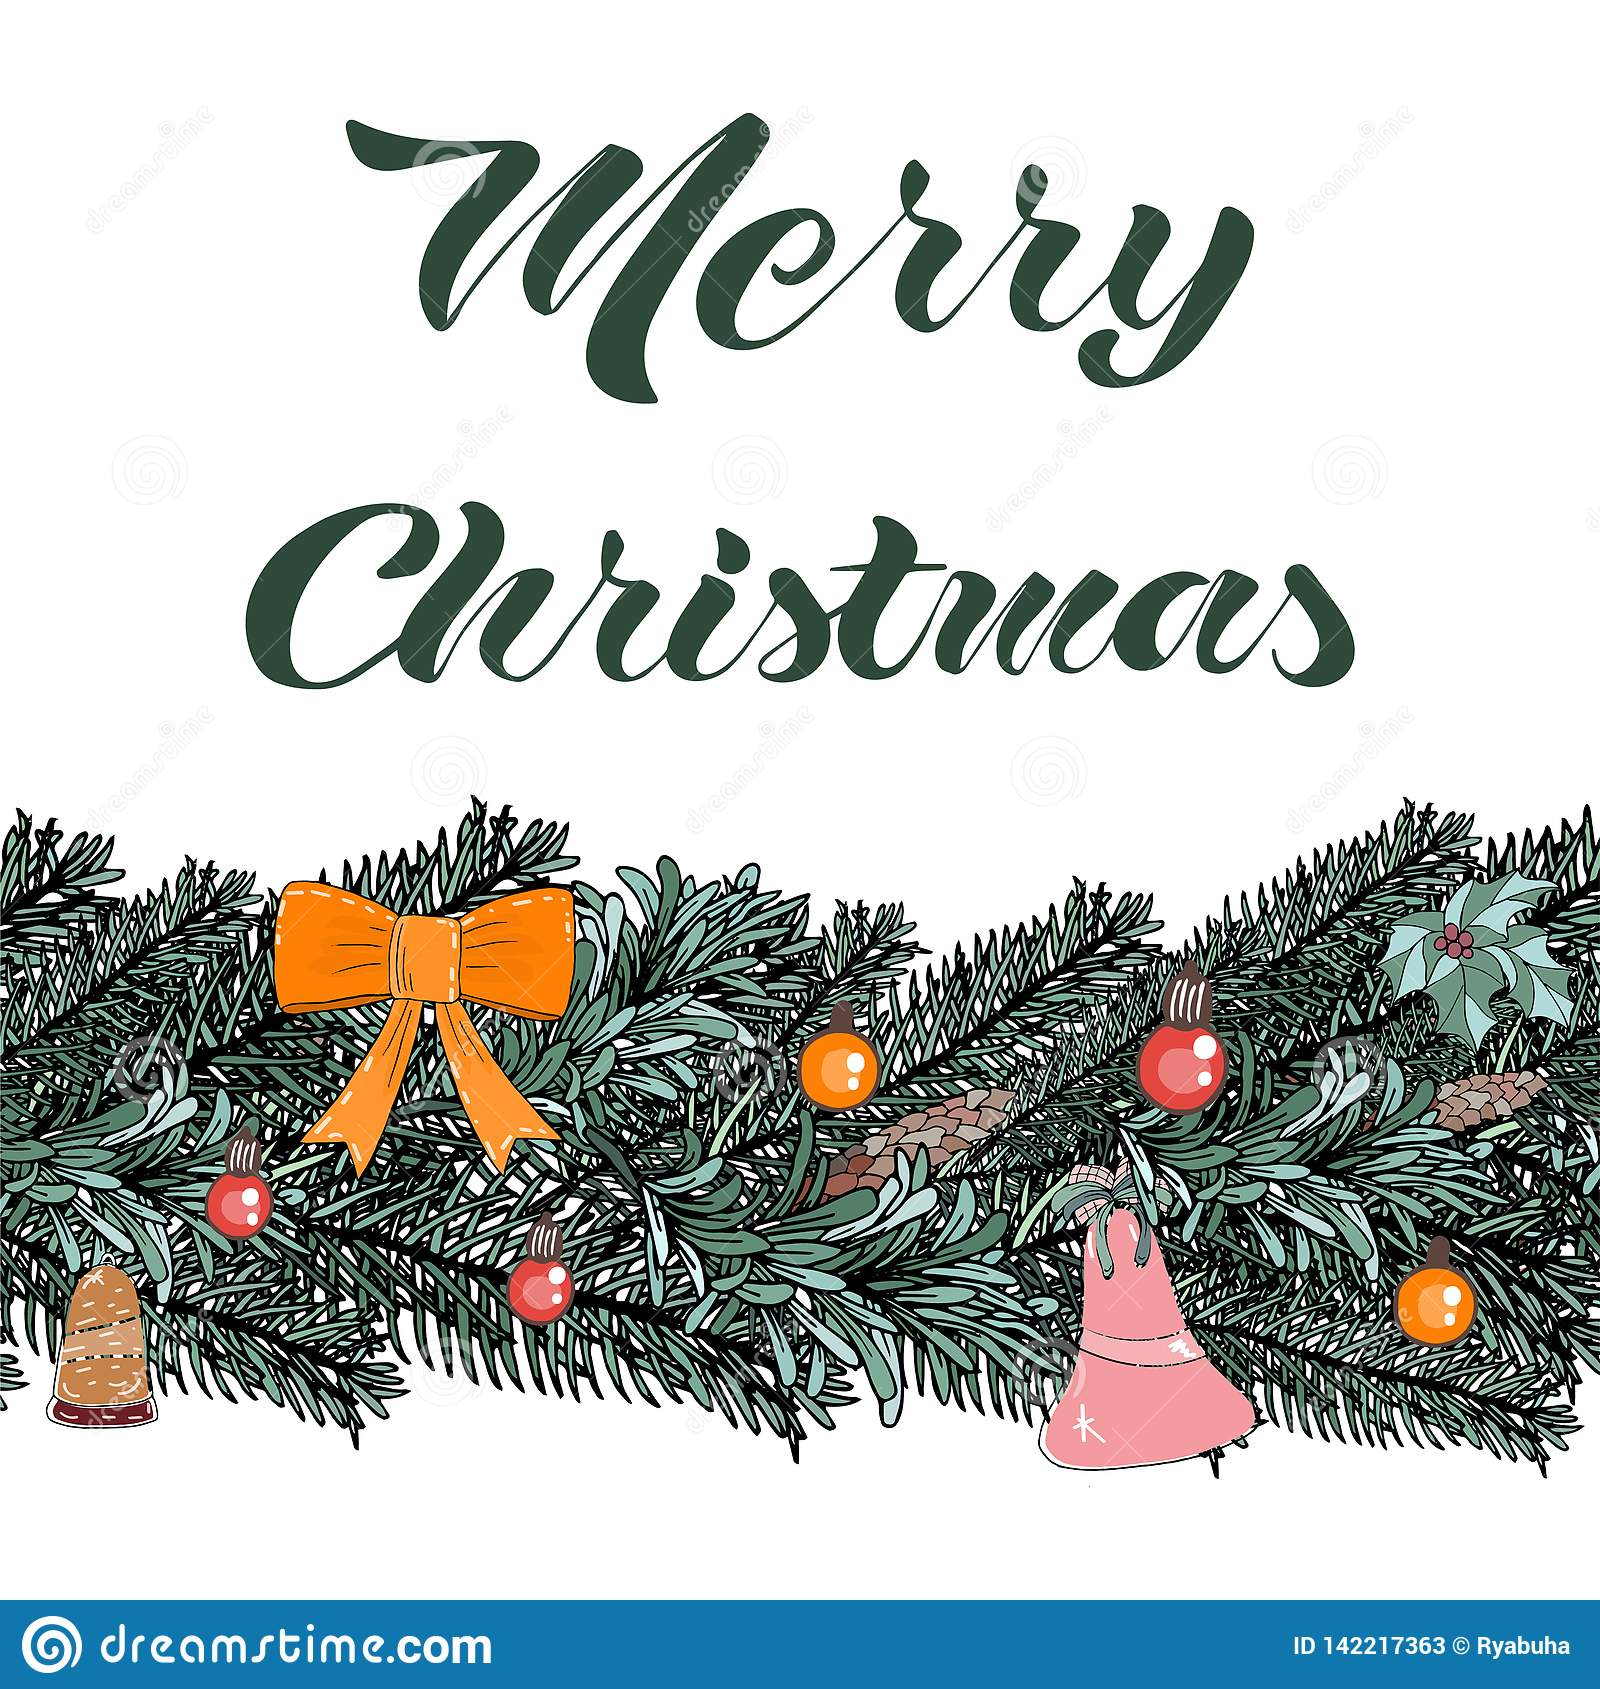 Template vector christmas illustration elements.